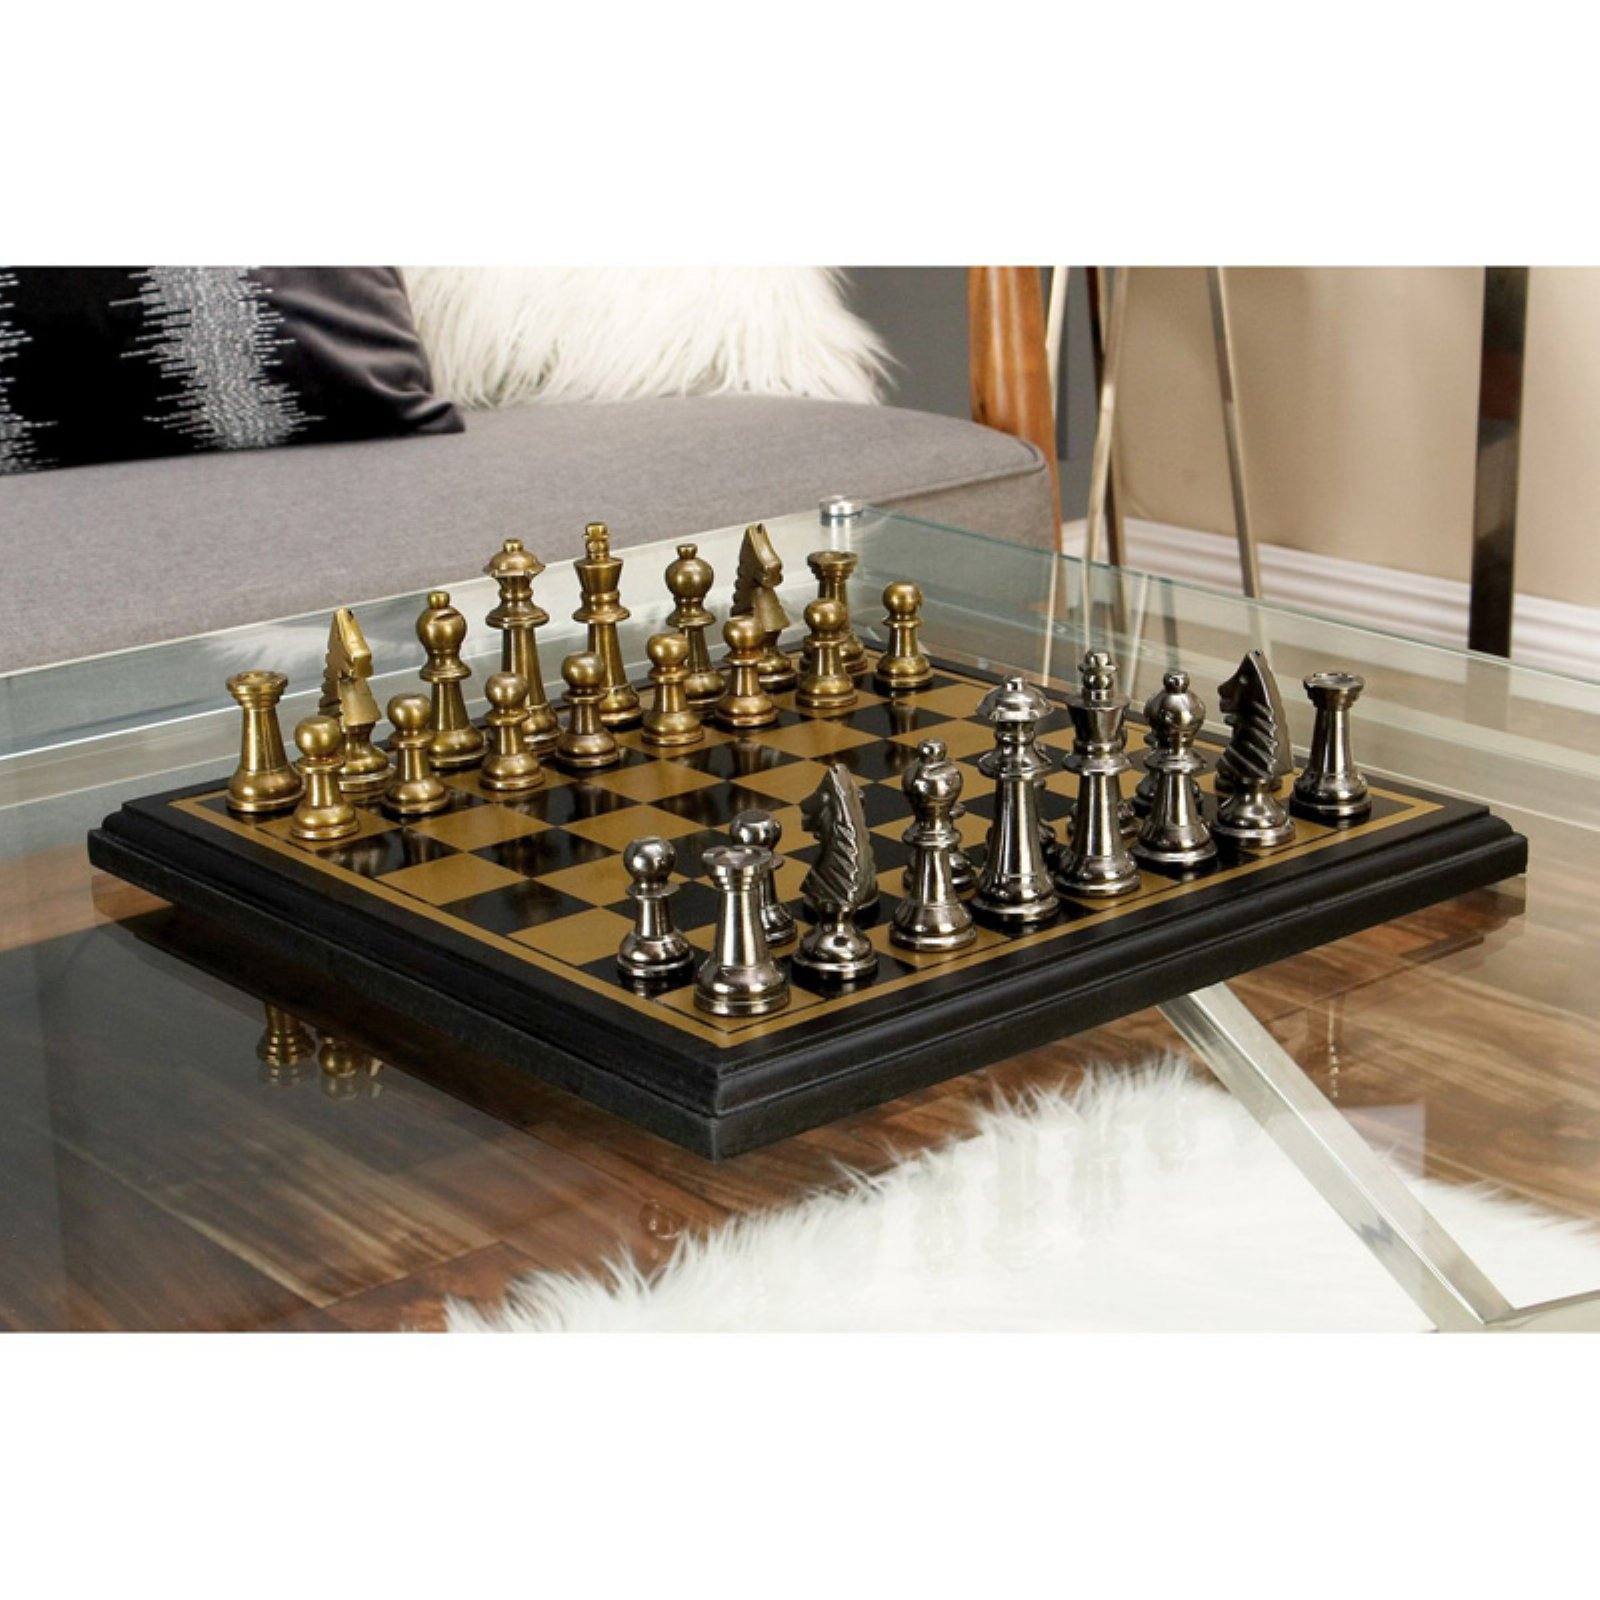 Decmode Aluminum Wood Chess Set, Multi Color by DecMode